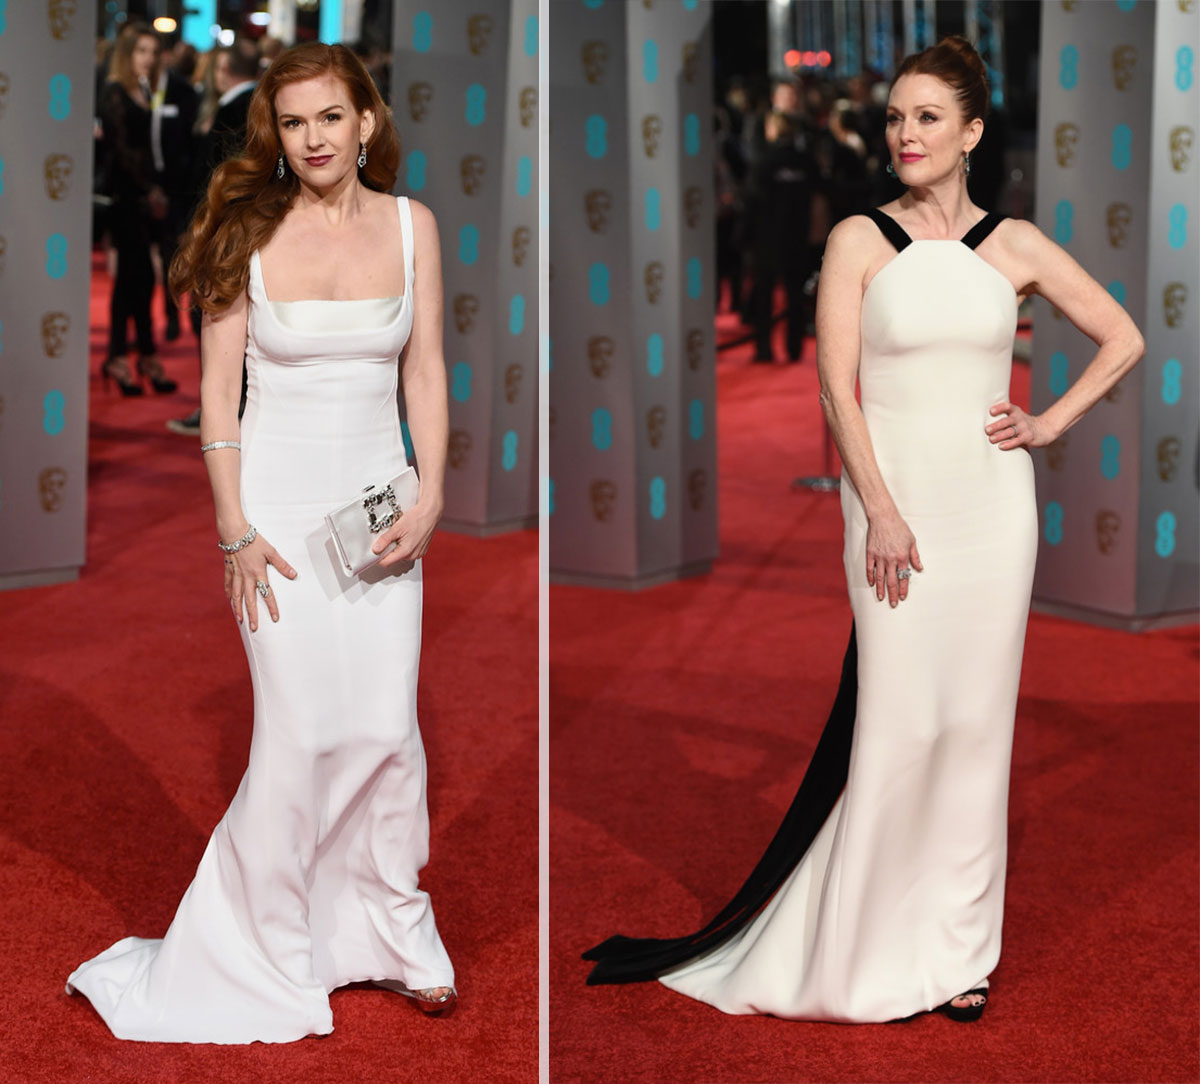 2016 Bafta Red Carpet dresses Isla Fisher Julianne Moore